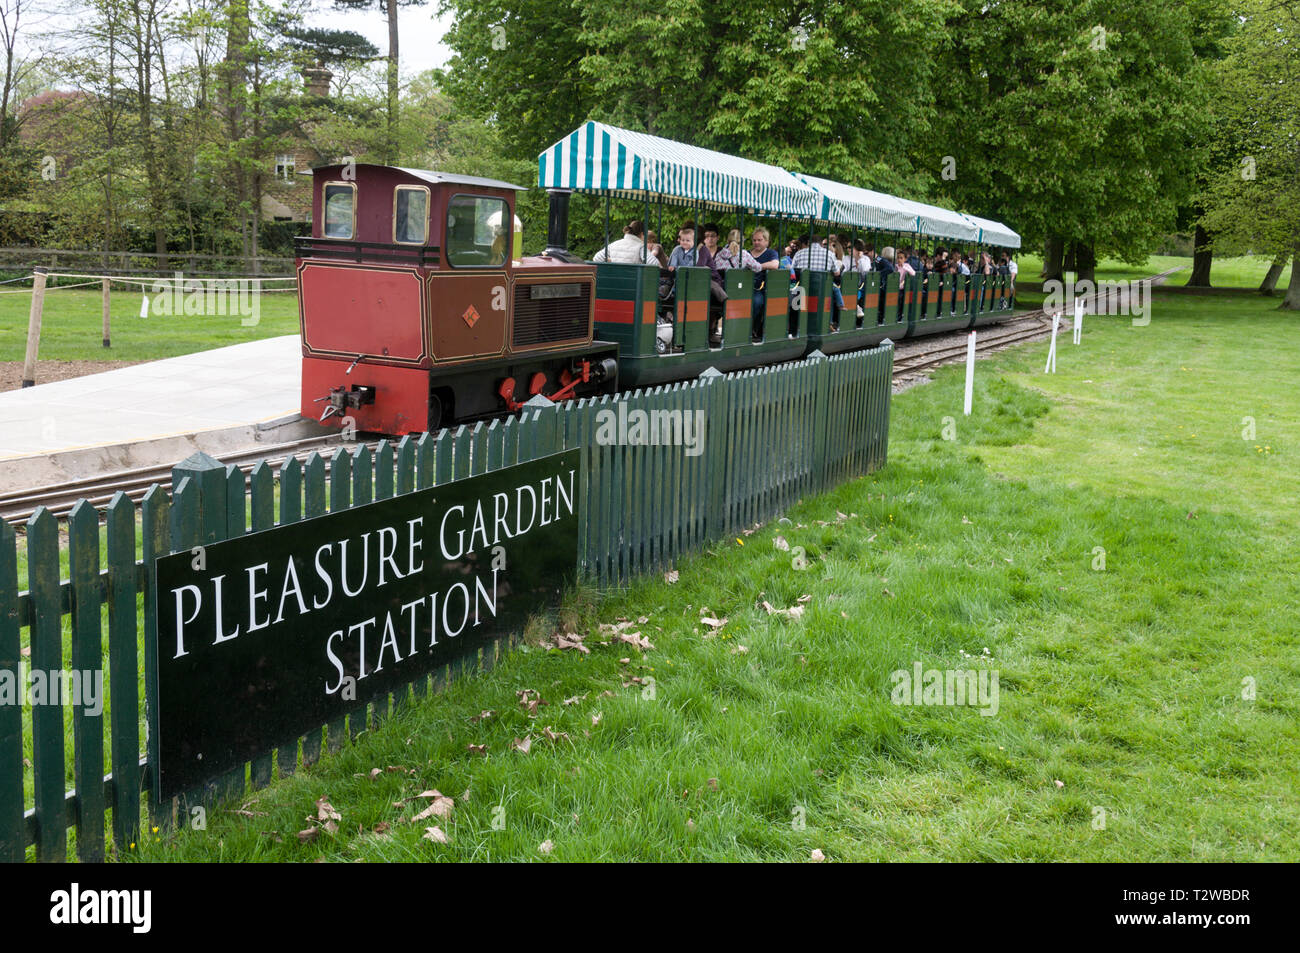 The small train named 'Sir Winston Churchill' with its carriages of visitors  leaving Pleasure Garden Station in the grounds of Blenheim Palace at Woo - Stock Image